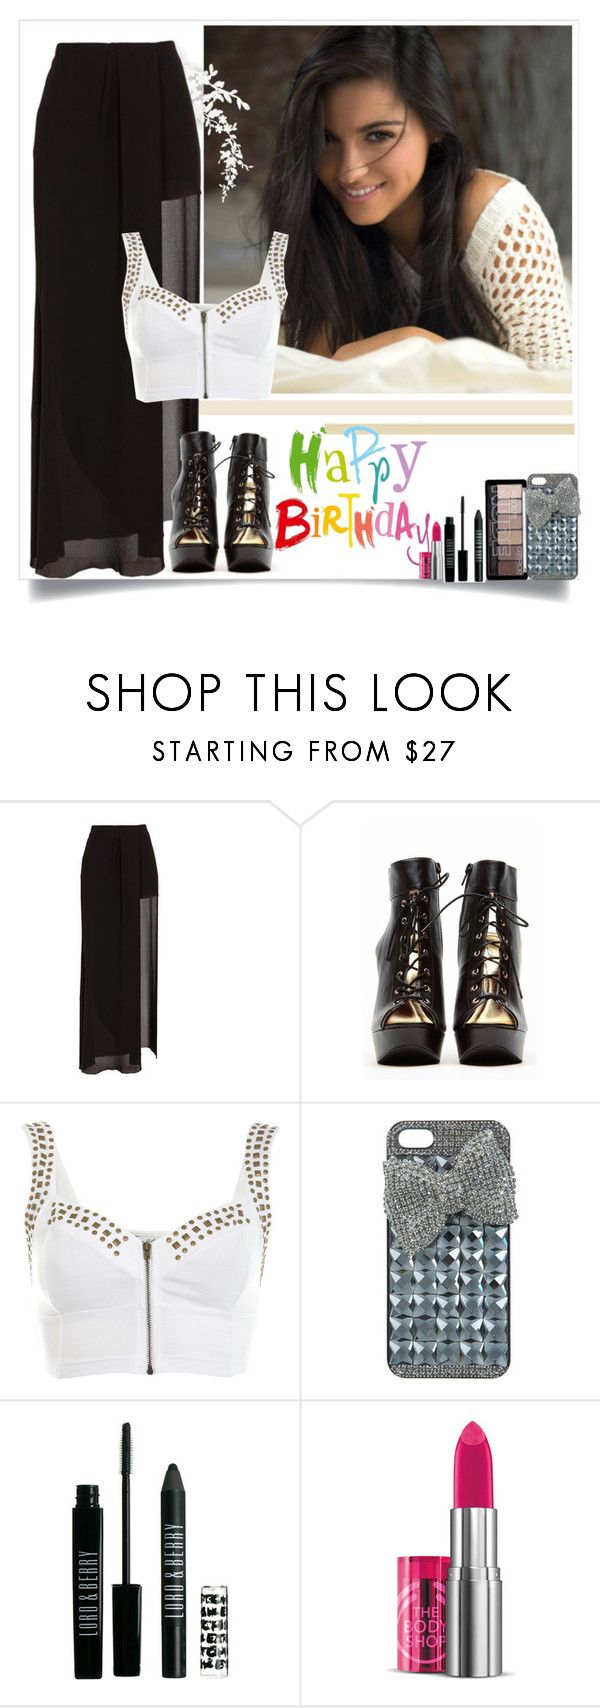 """""""Birthday party with Maite and friends"""" by giovannacarlamalik ❤ liked on Polyvore featuring Acne Studios, Qupid, Miss Selfridge, Lord & Berry, The Body Shop, happybirthday, rbd, Rebelde, Maite and perroni"""